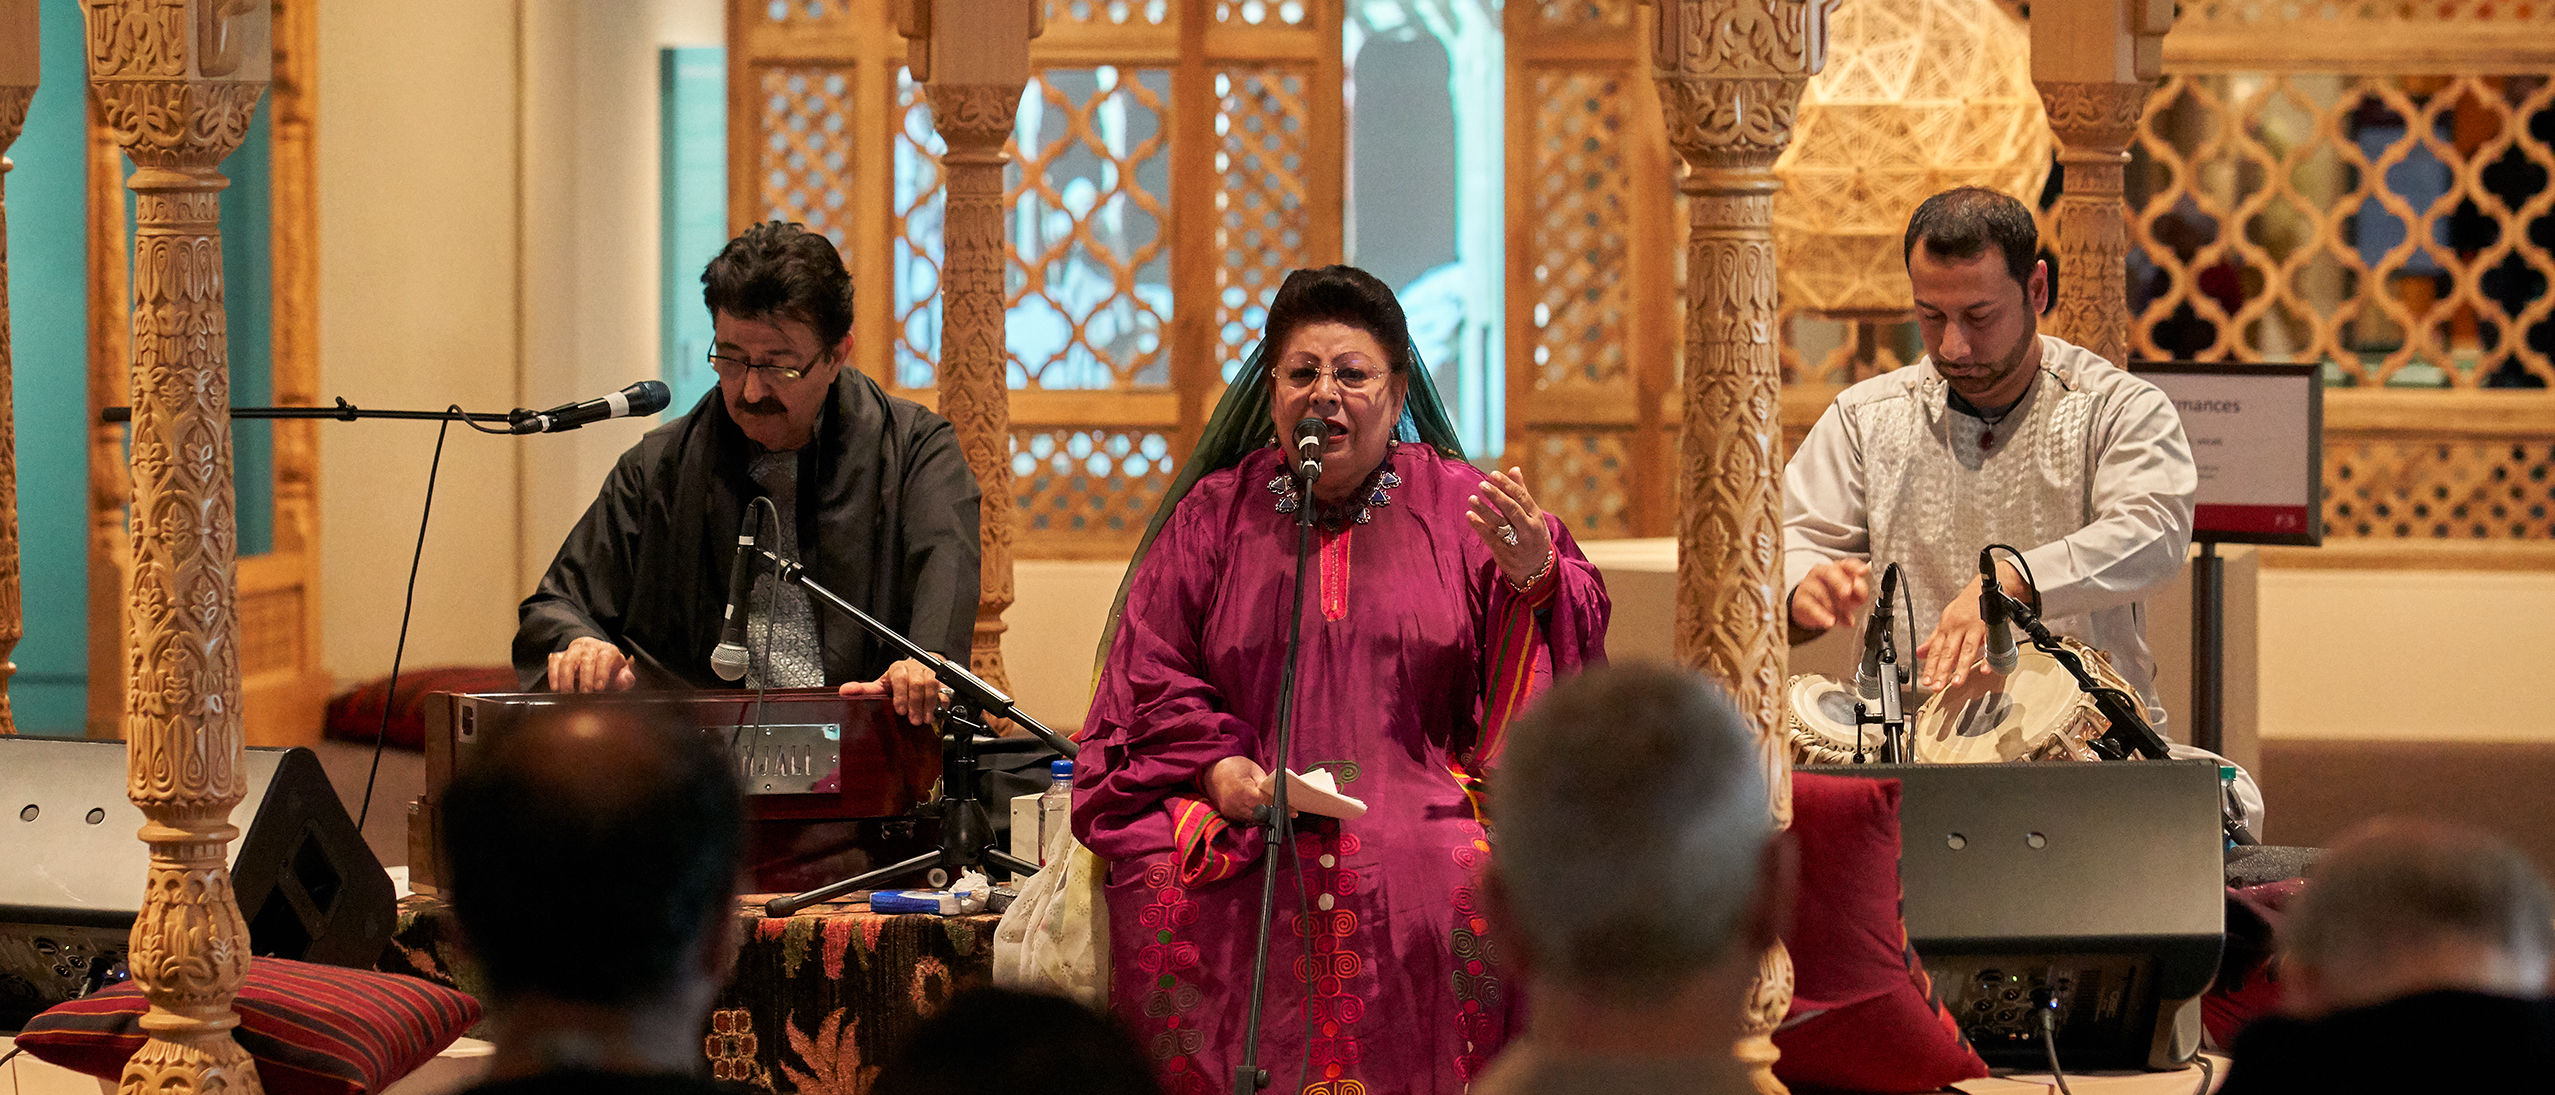 Vocalist Ustād Mahwash performing at the Freer and Sackler Galleries